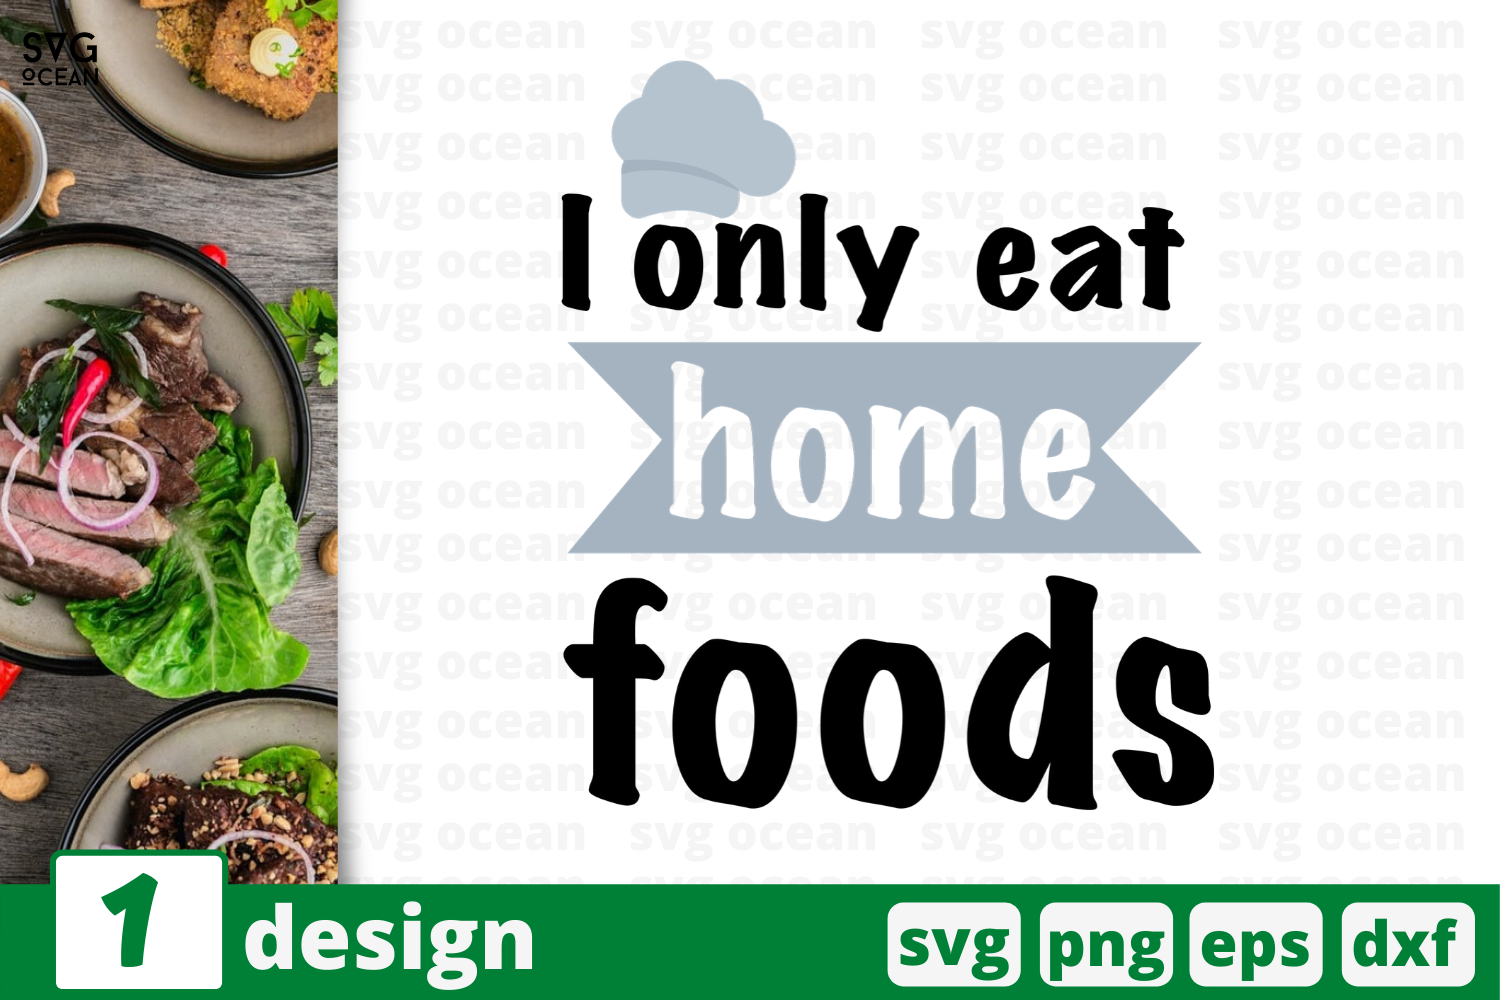 Download Free I Only Eat Home Foods Graphic By Svgocean Creative Fabrica for Cricut Explore, Silhouette and other cutting machines.